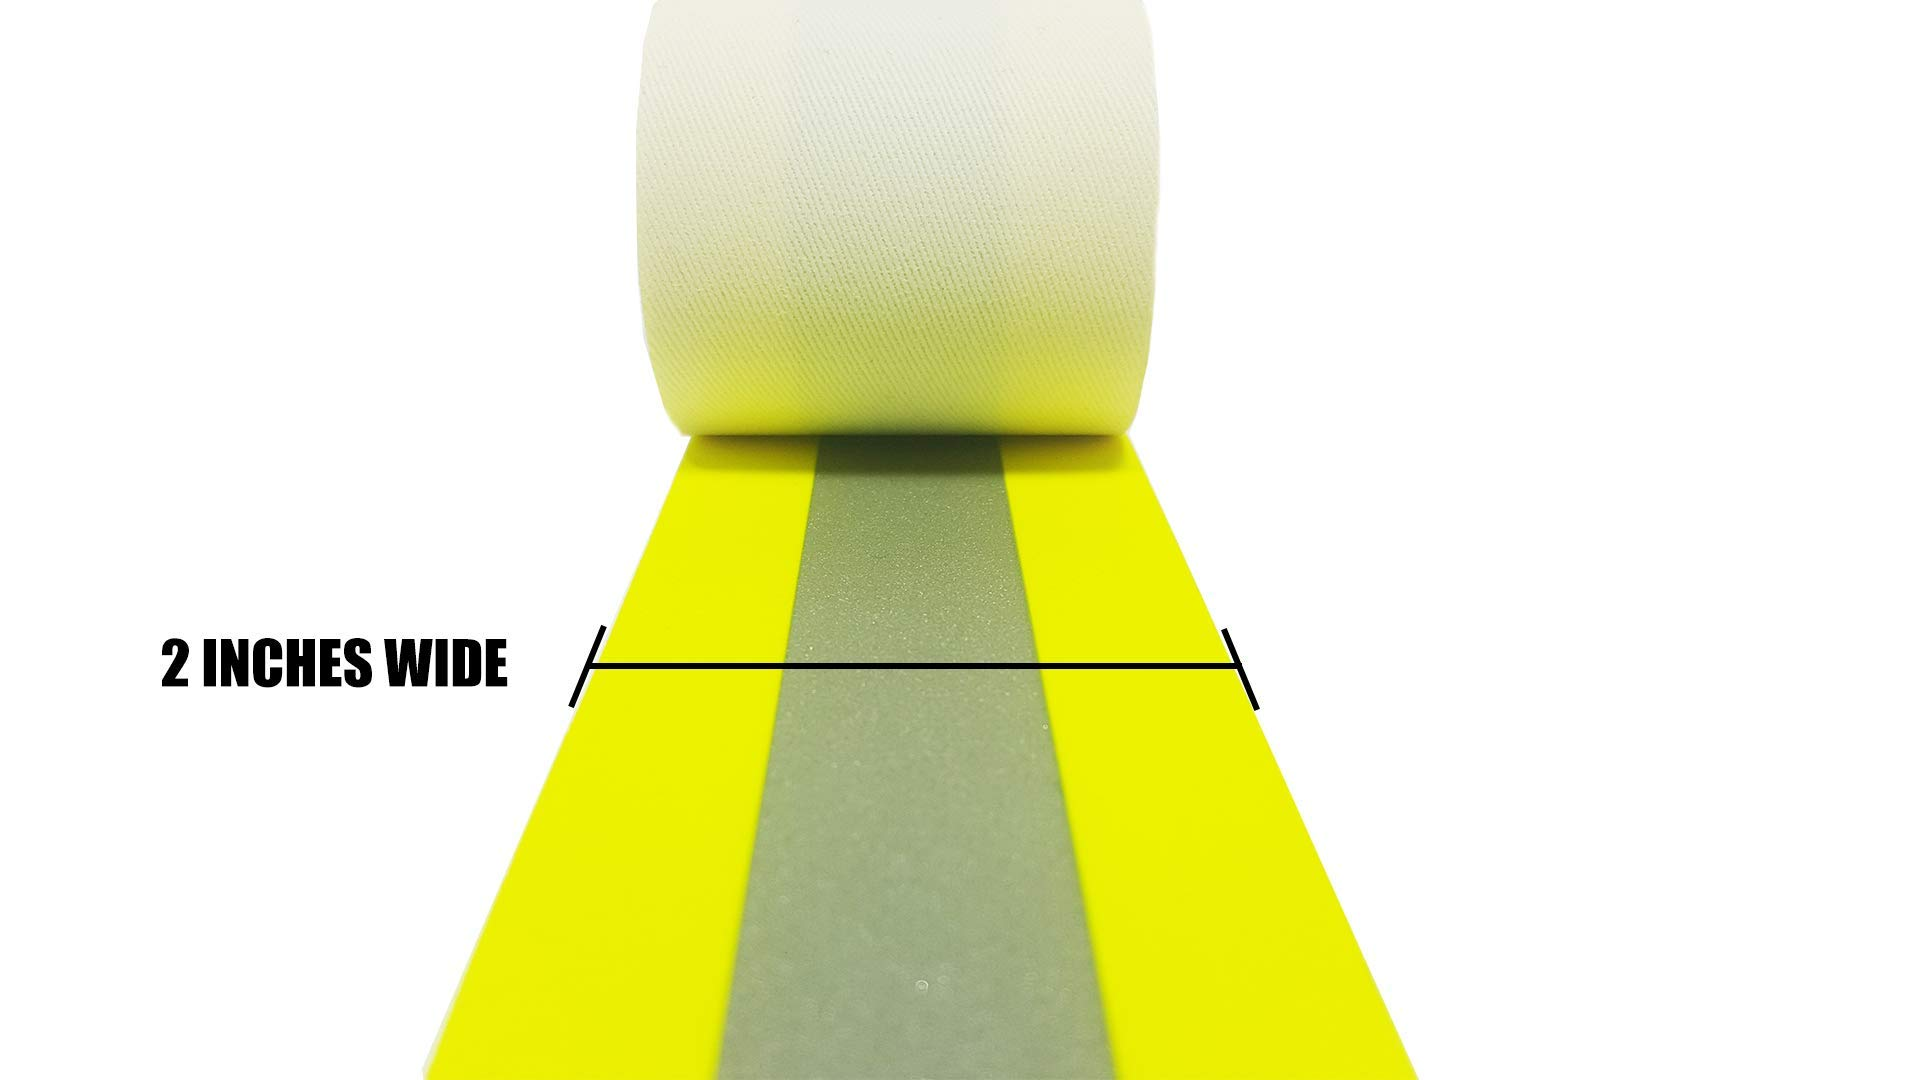 Reflective Fire Retardant Sew Tape High Visibility Firefighter Fluorescent (50M / 1970 inch, Yellow)